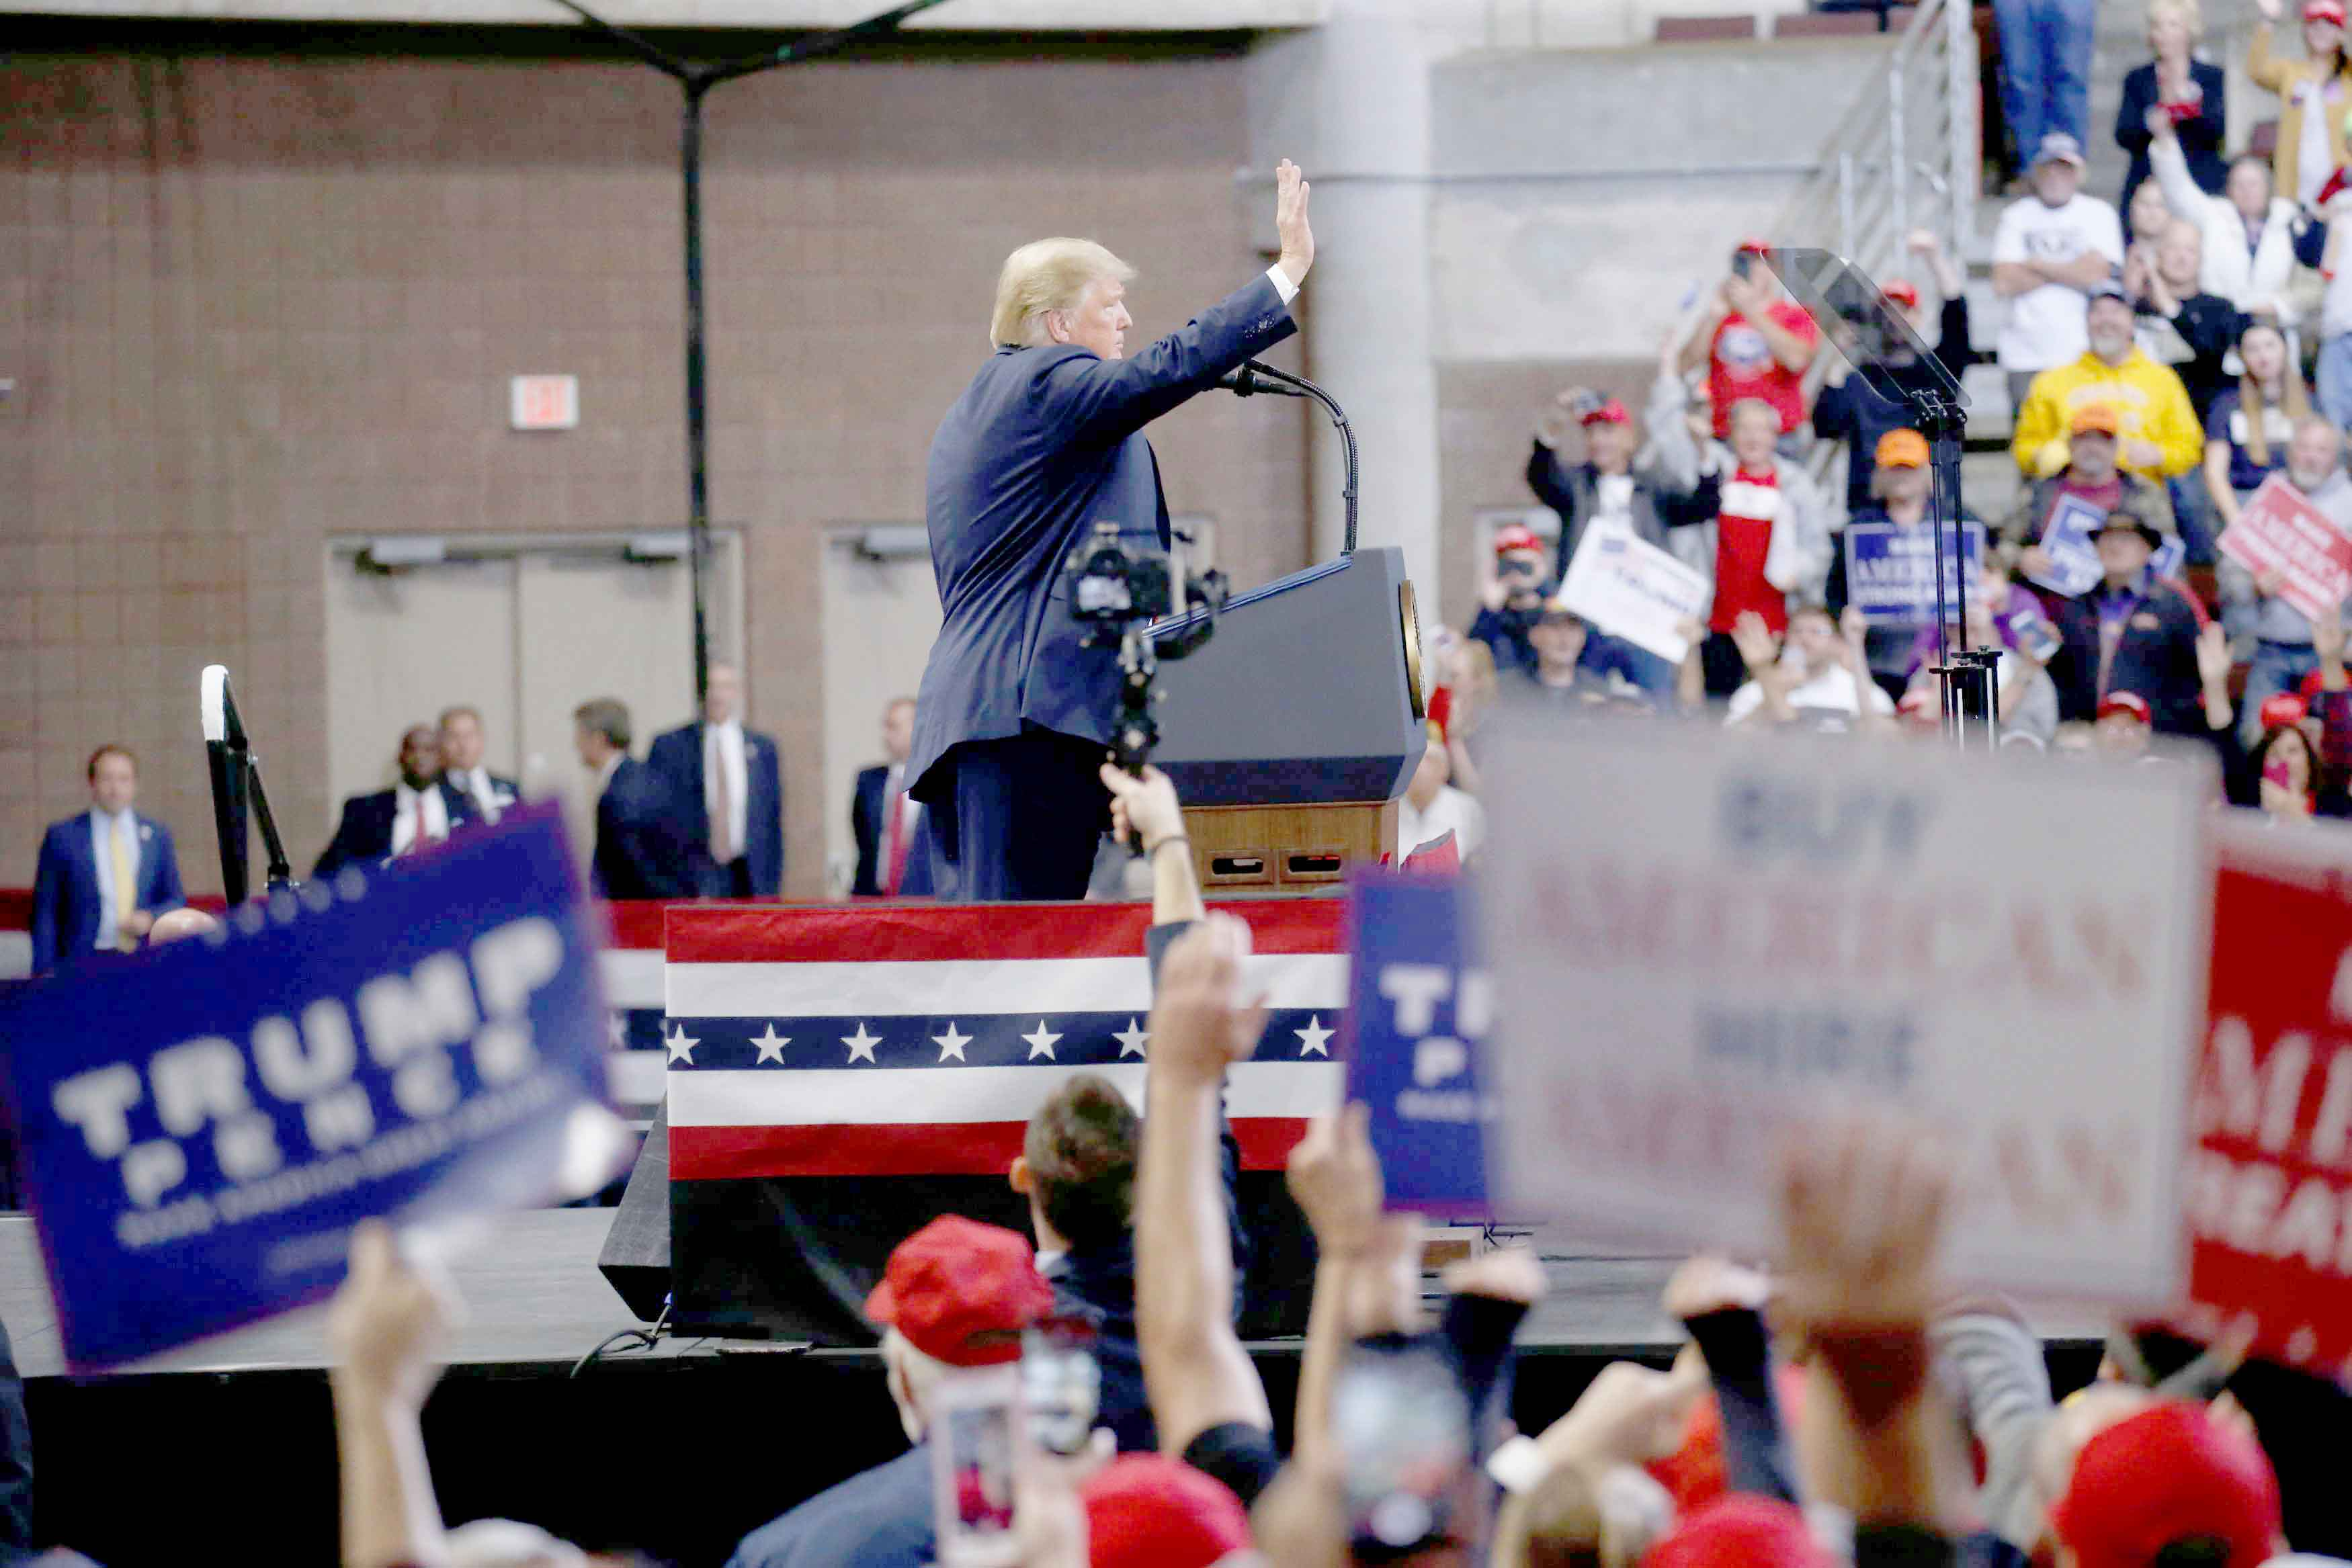 US President Donald Trump addresses supporters during a campaign rally at Mayo Civic Center in Rochester, on October 4. (Reuters)